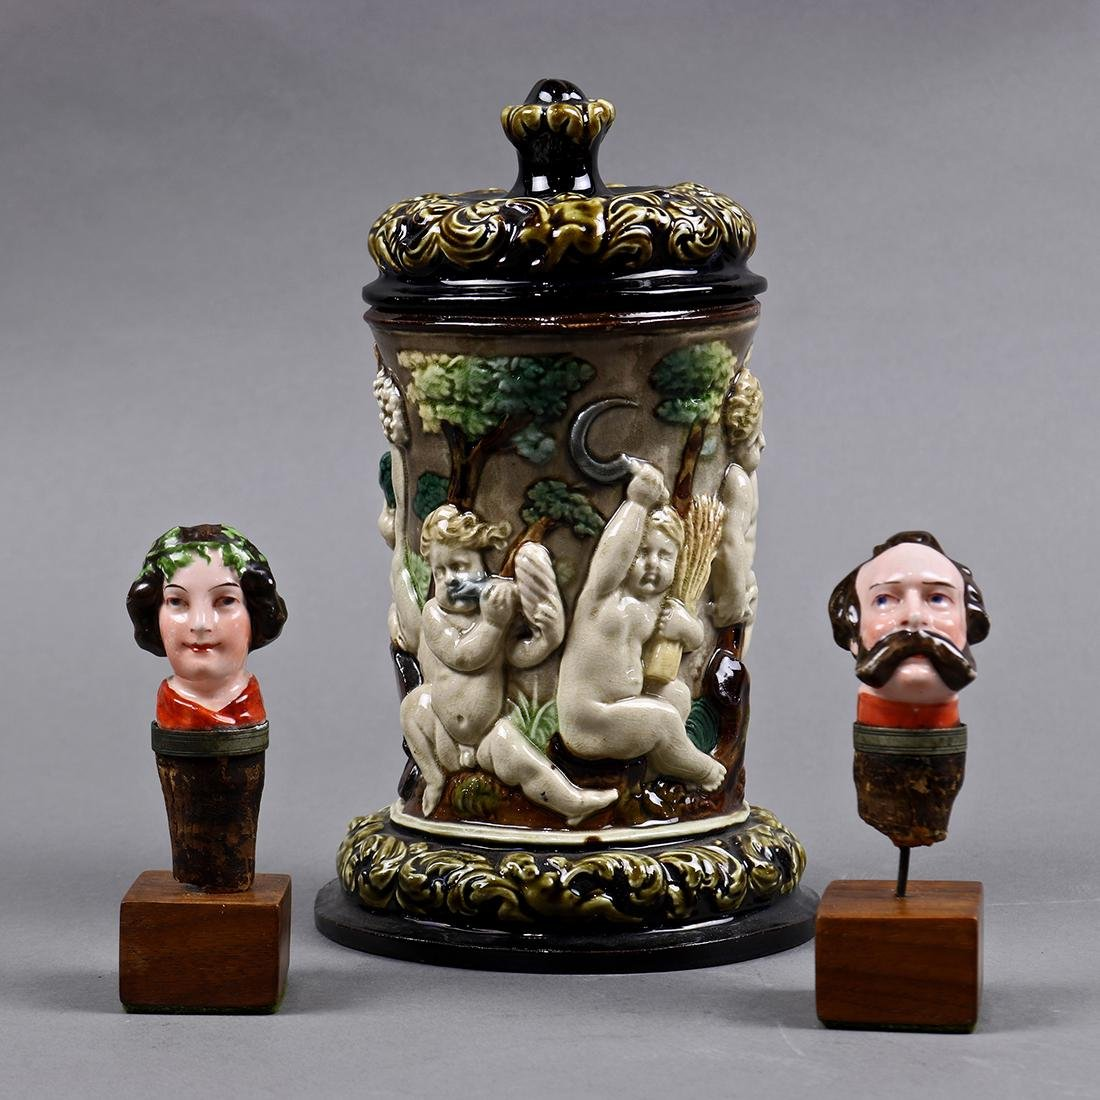 (lot of 3) Figural wine stopper group, consisting of a